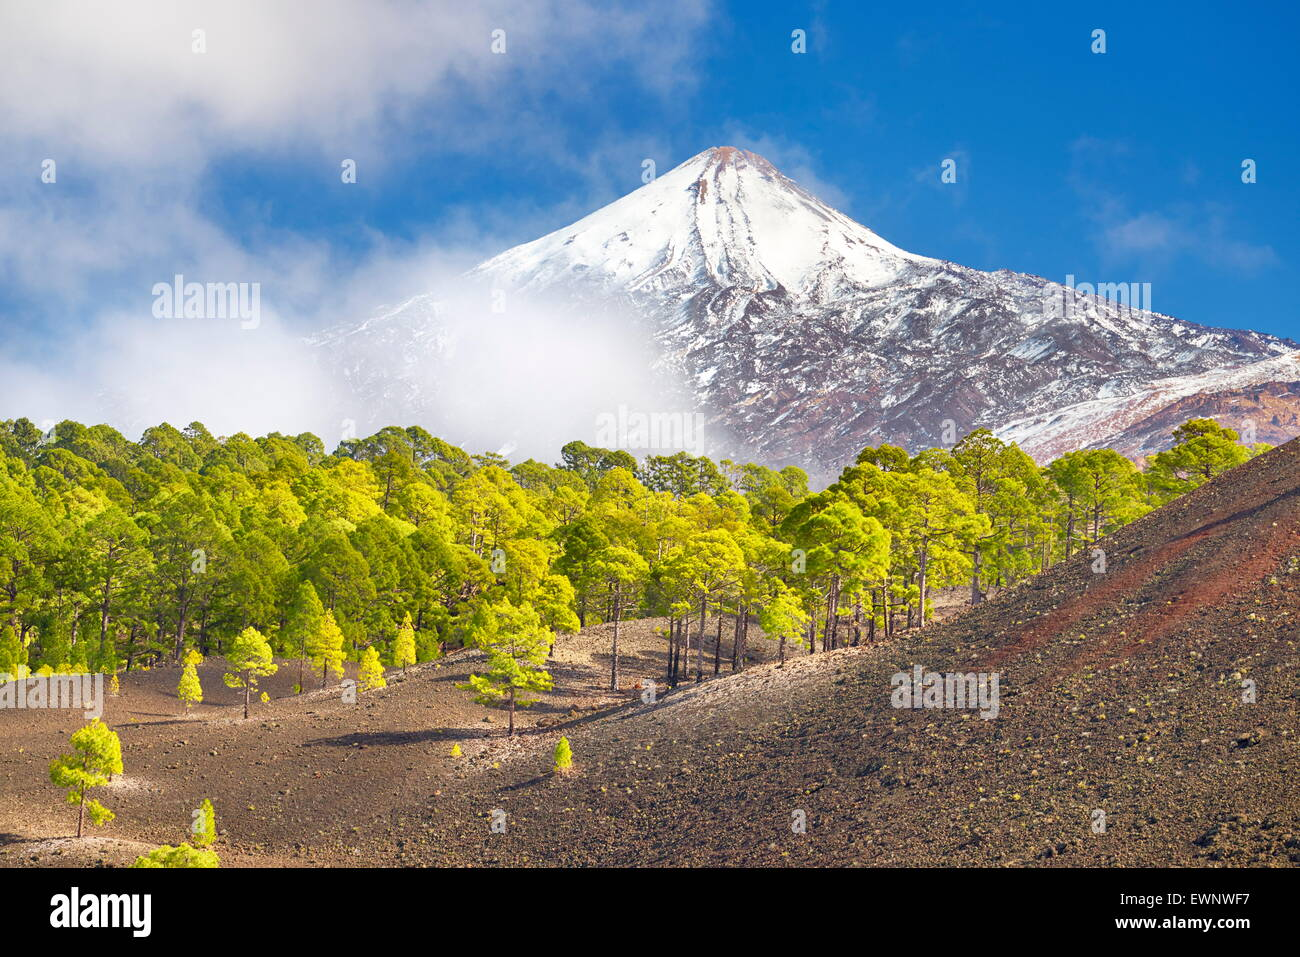 Teide National Park, Tenerife, Canary Islands, Spain Stock Photo